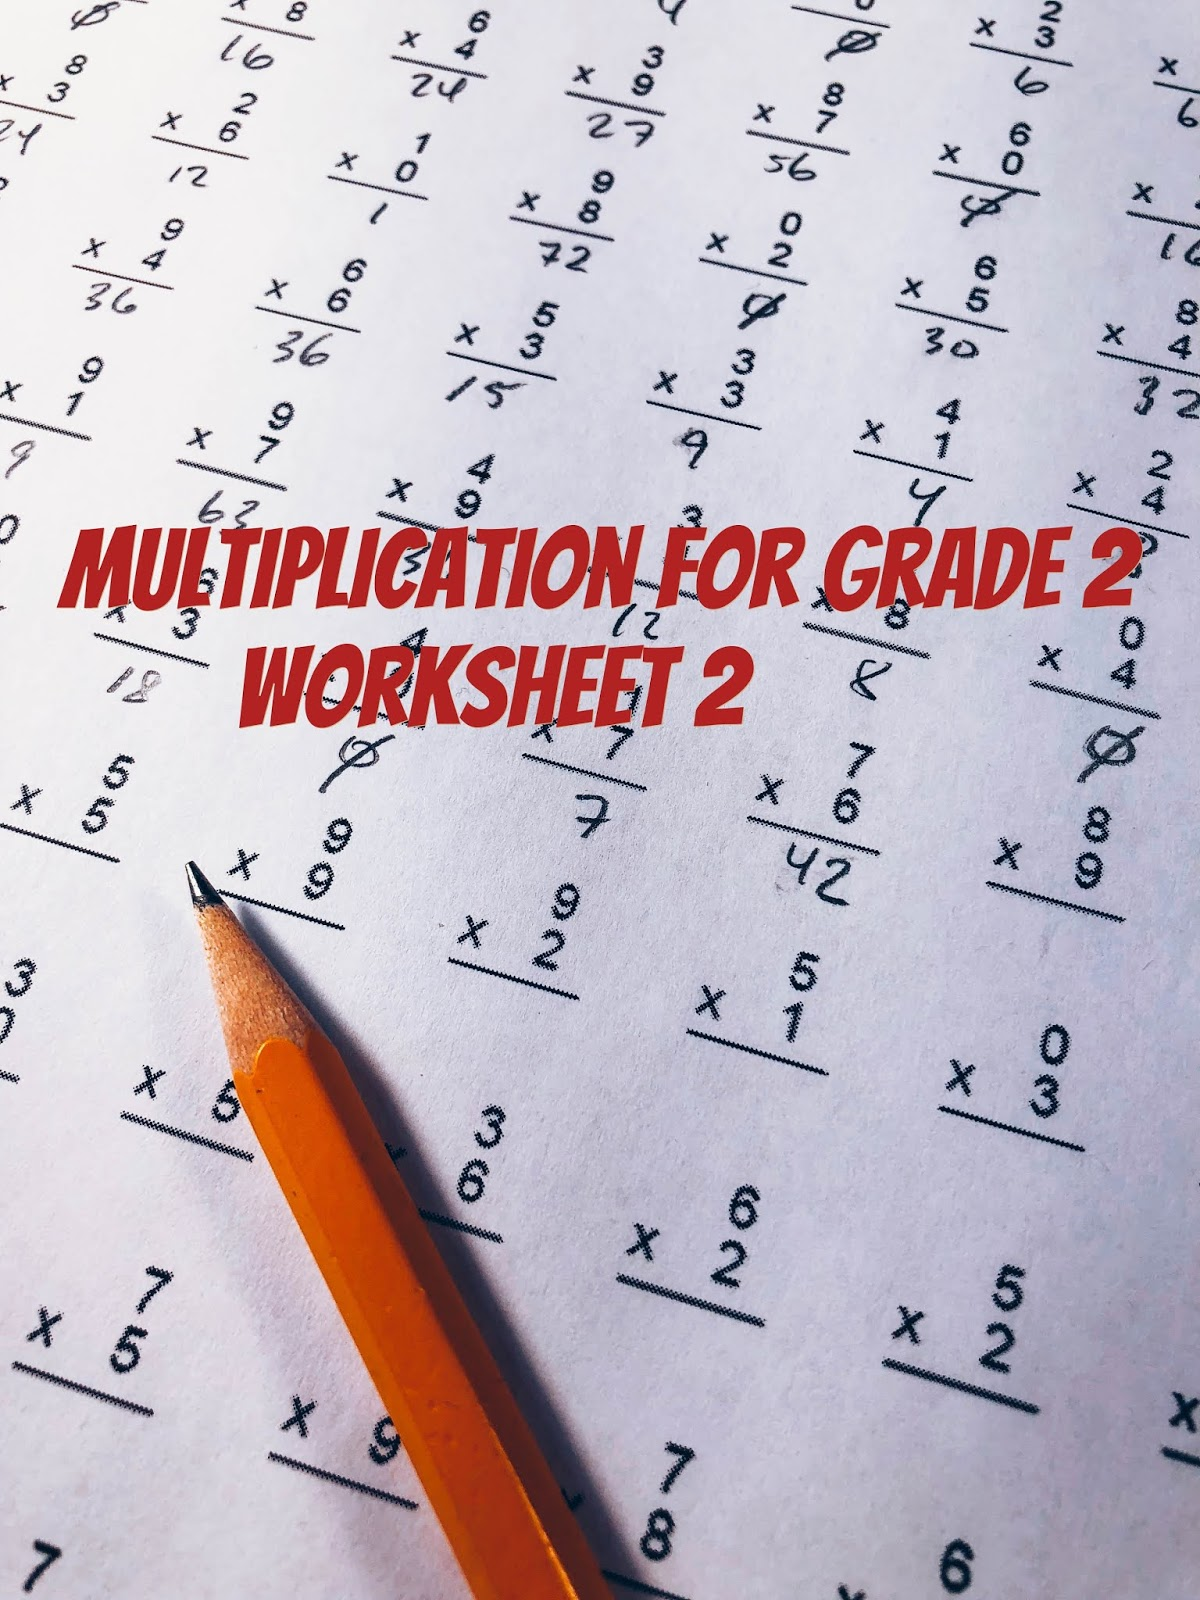 hight resolution of Math Quiz Multiplication worksheet 2 for grade 2 (Questions and Answers)